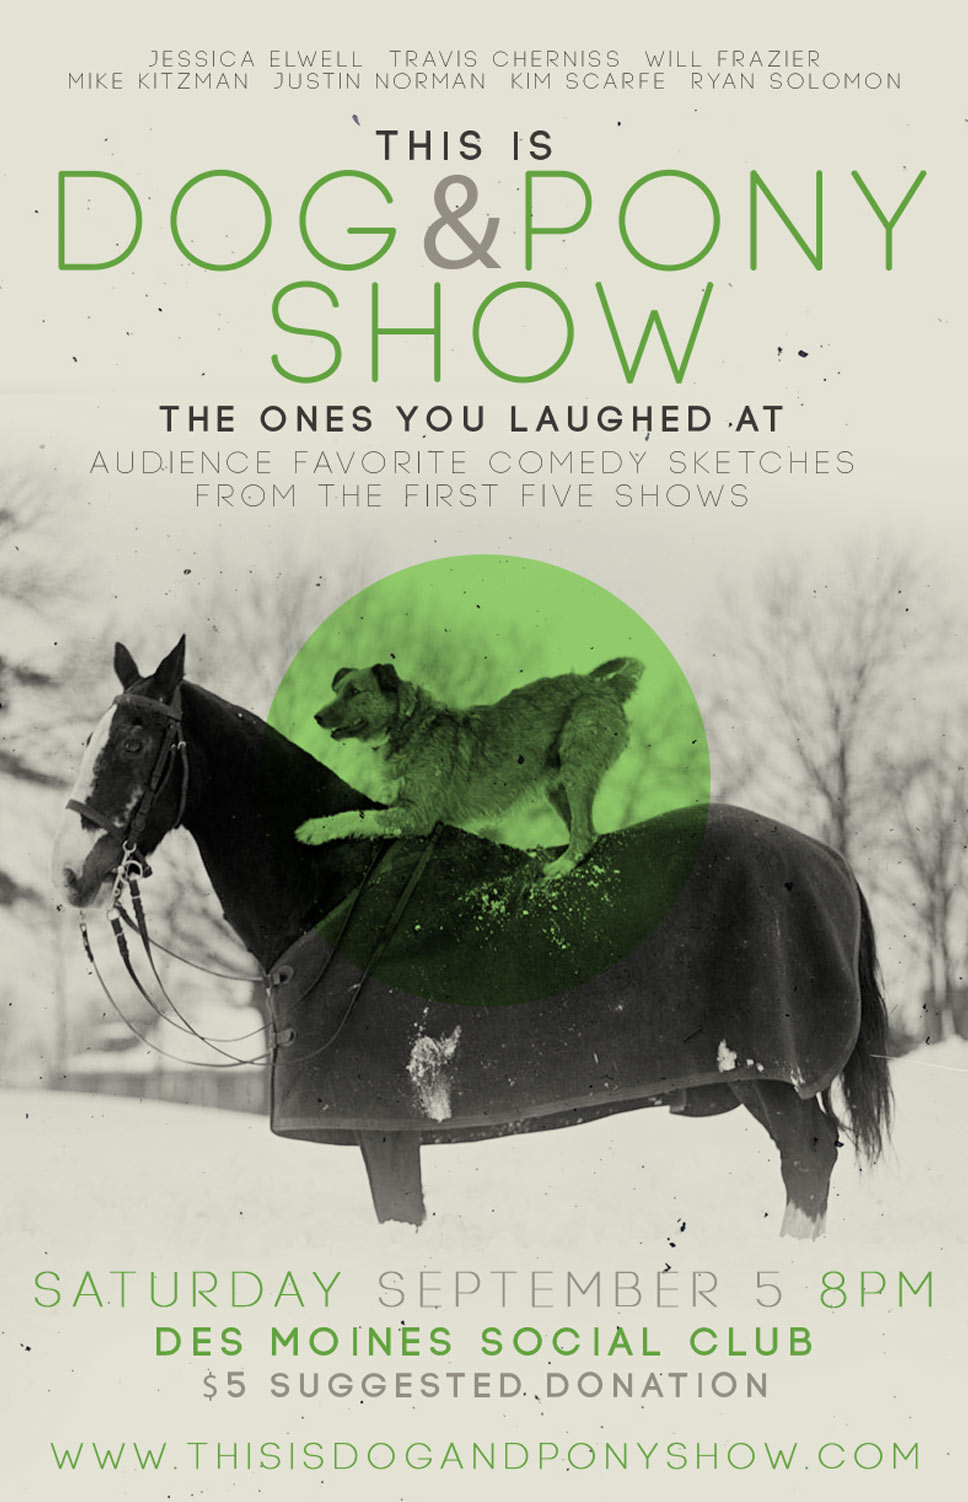 Dog & Pony Show 4: The Ones You Laughed At